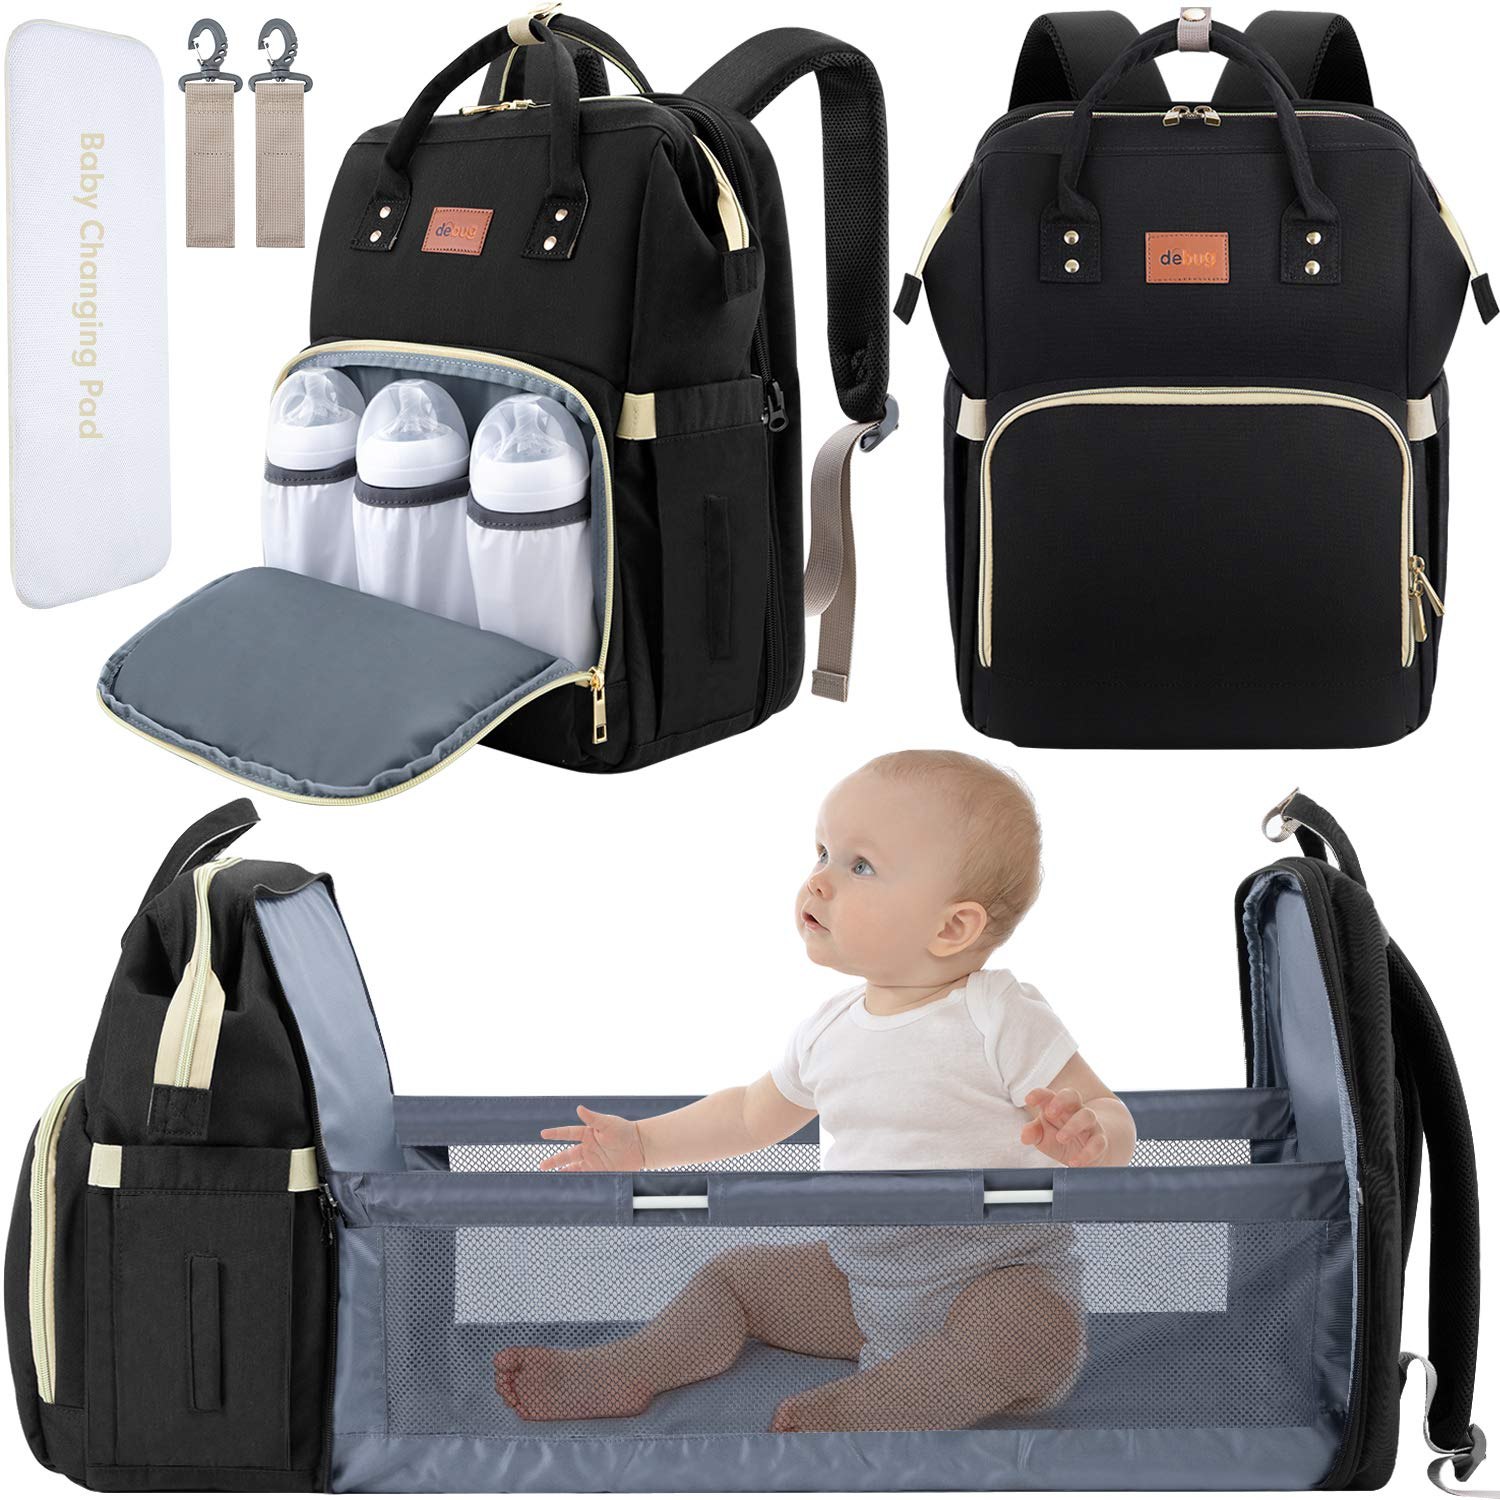 DEBUG Baby Diaper Bag Backpack with Changing Station Diaper Bags for Baby Bags for Boys Girl Diper Bag with Bassinet Bed Mat Pad Men Dad Mom Travel Waterproof Stroller Straps Large Capacity Black